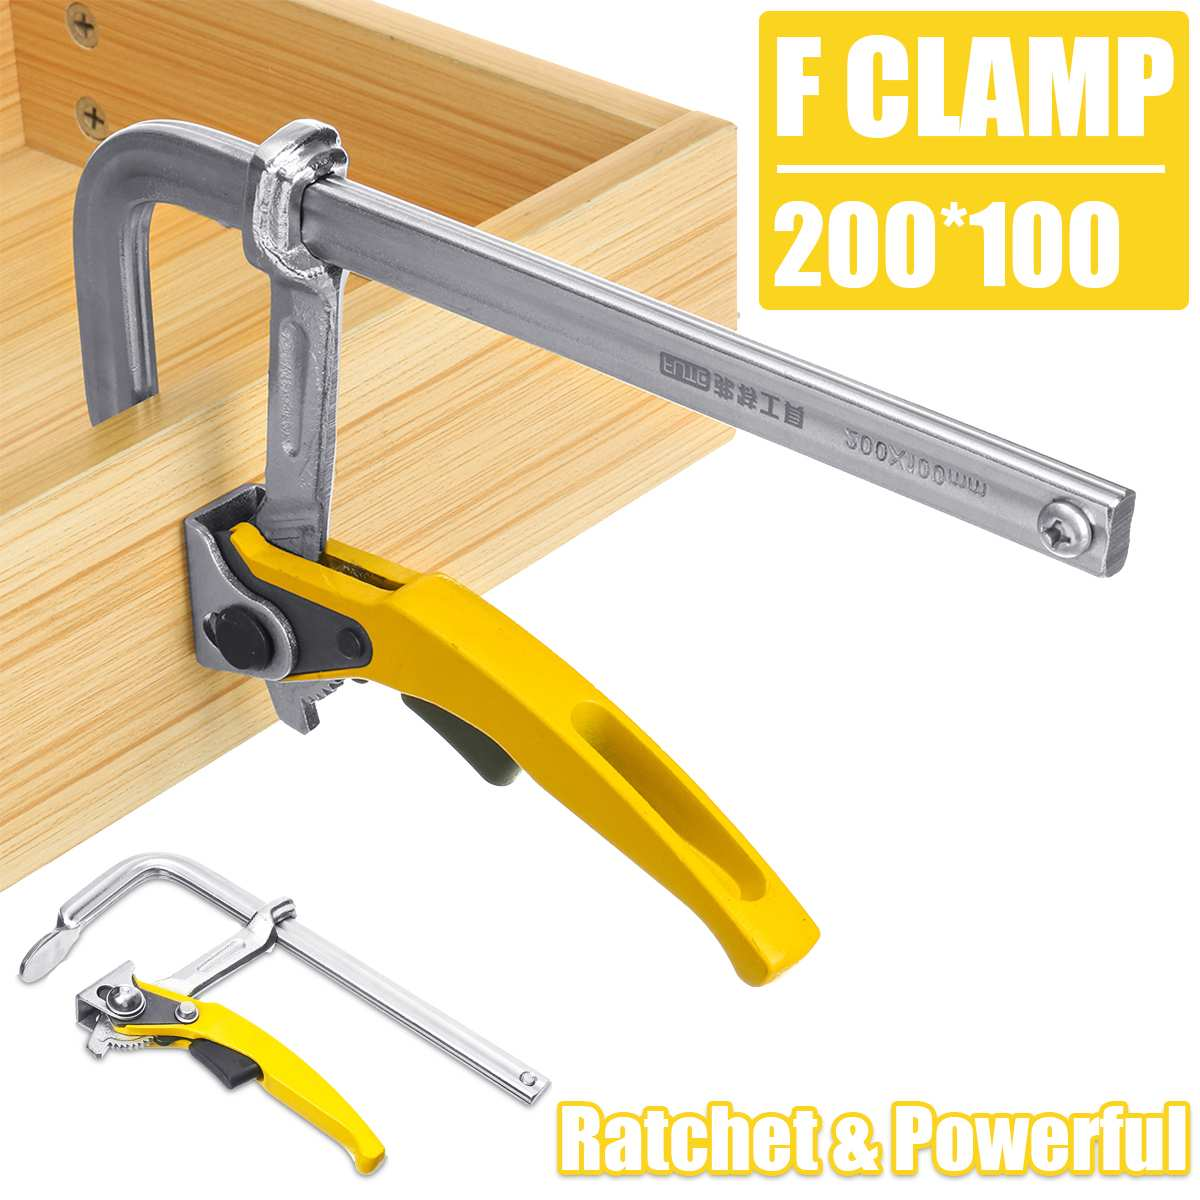 Metal F Type Woodworking Clamp Carpentry Gadgets Adjustable DIY Tools Wood Clip Working Bar F Clamp Clip Kit Gadget HardwareMetal F Type Woodworking Clamp Carpentry Gadgets Adjustable DIY Tools Wood Clip Working Bar F Clamp Clip Kit Gadget Hardware